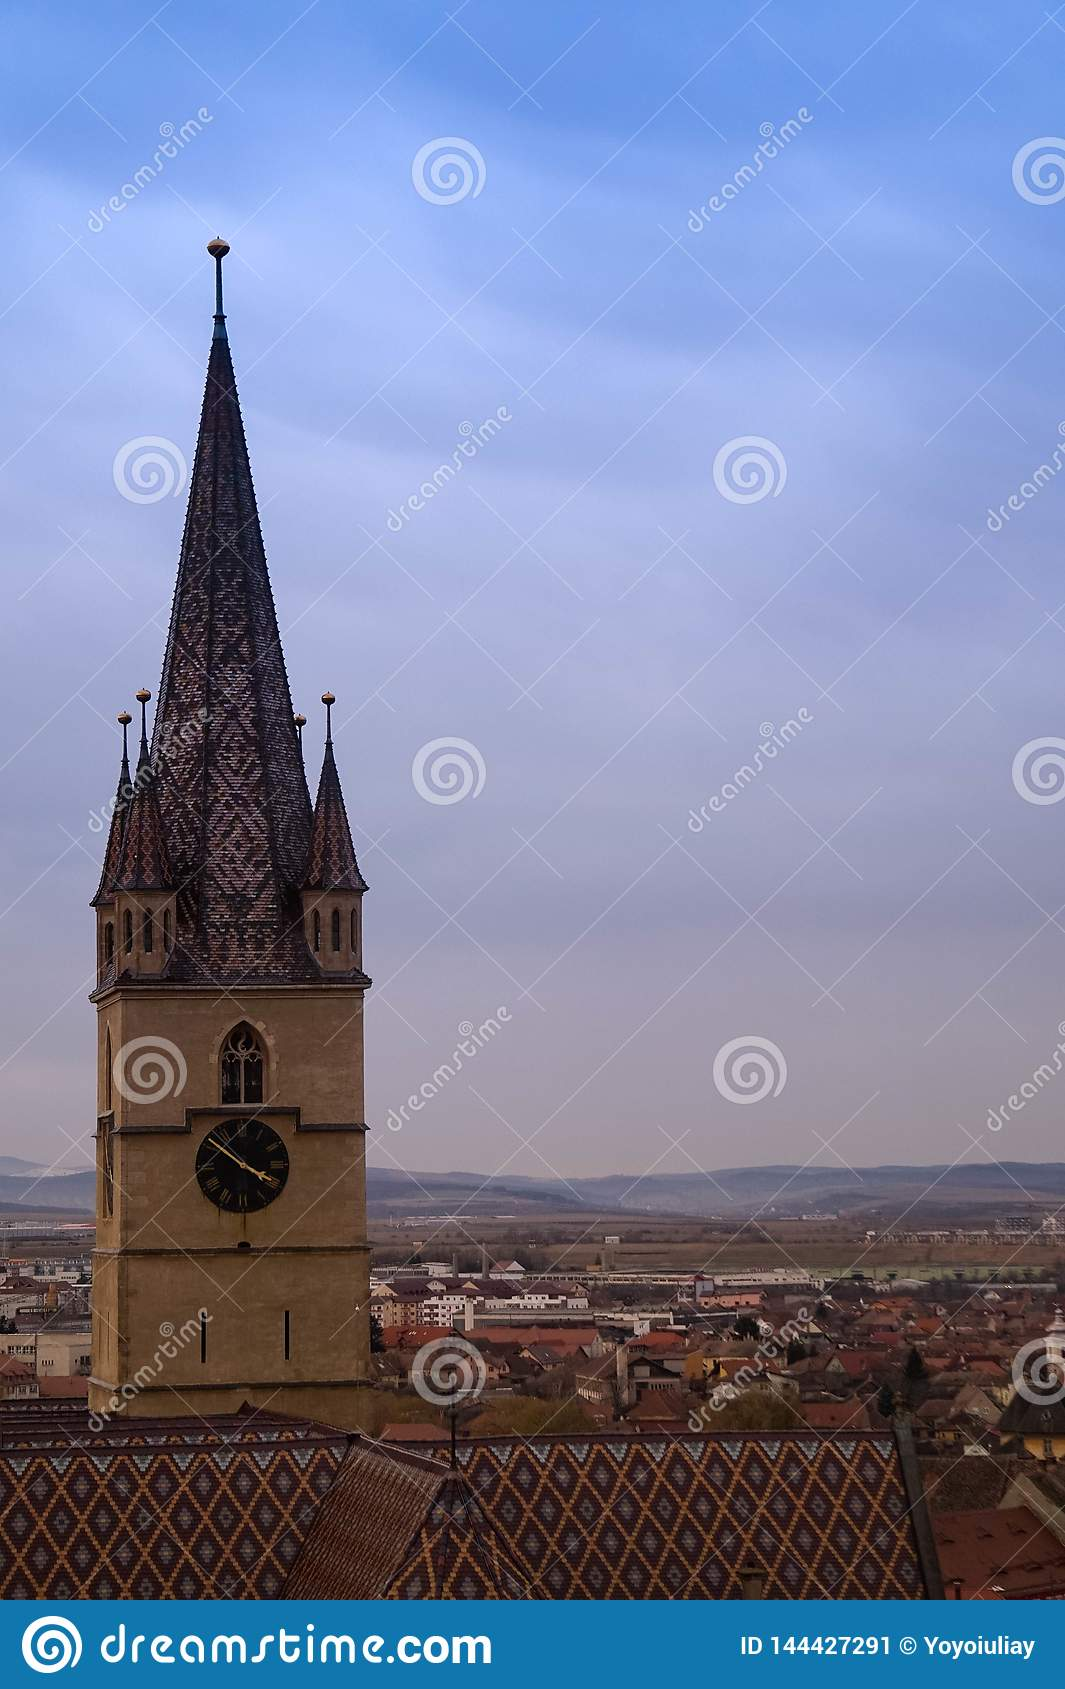 The great clock tower